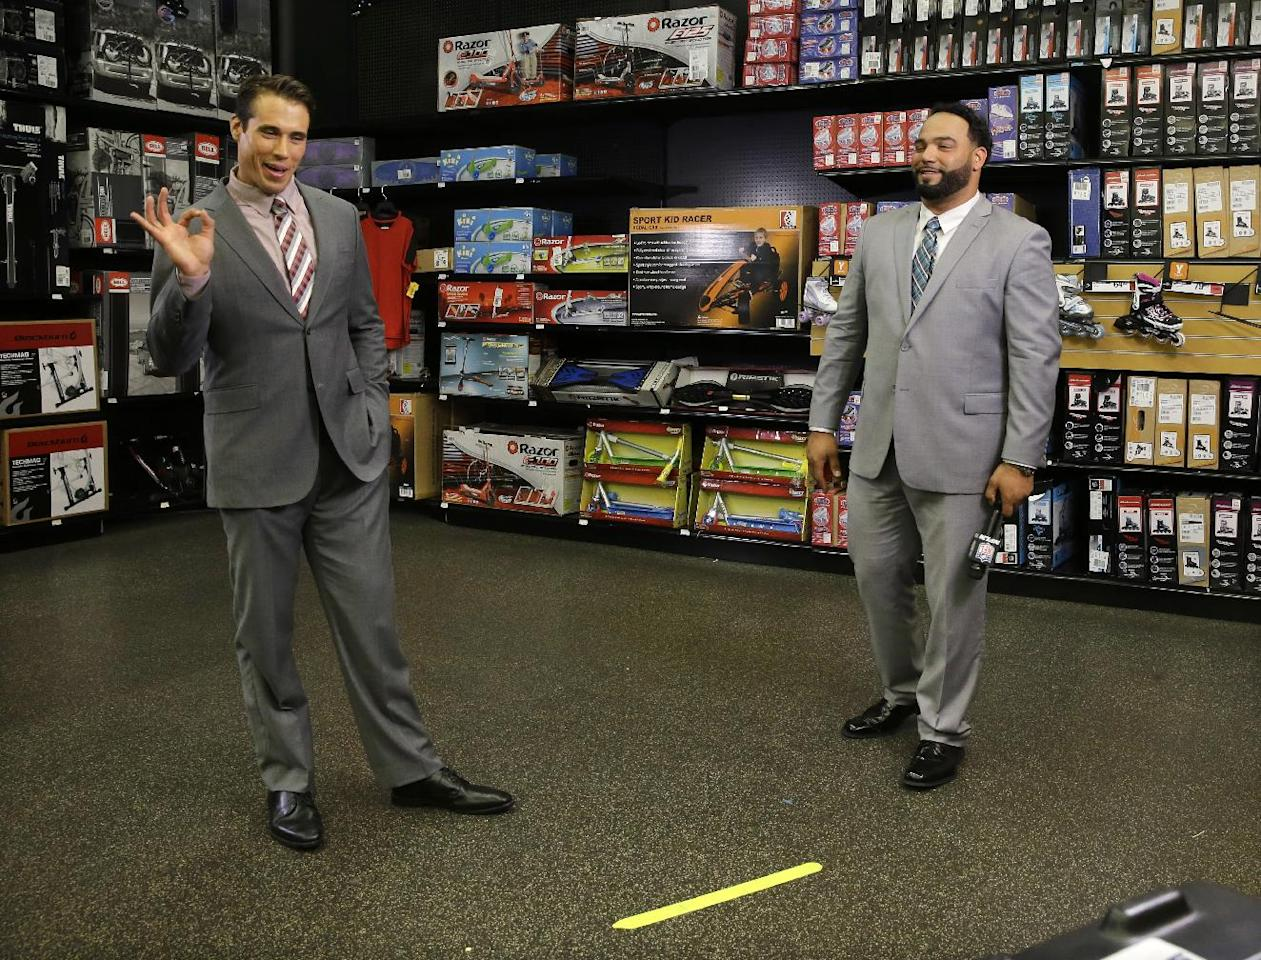 In this photo taken on Wednesday, June 18, 2014, former first-round draft pick, quarterback Brady Quinn, left, signals that he and fellow NFL football player, defensive tackle Antonio Garay, right, did well in a practice interview at a sporting goods store during the NFL's Broadcast Boot Camp in Mount Laurel, N.J. Twenty-five current and former players participating in the NFL's Broadcast Boot Camp this week, are vying for broadcasting gigs. (AP Photo/Mel Evans)